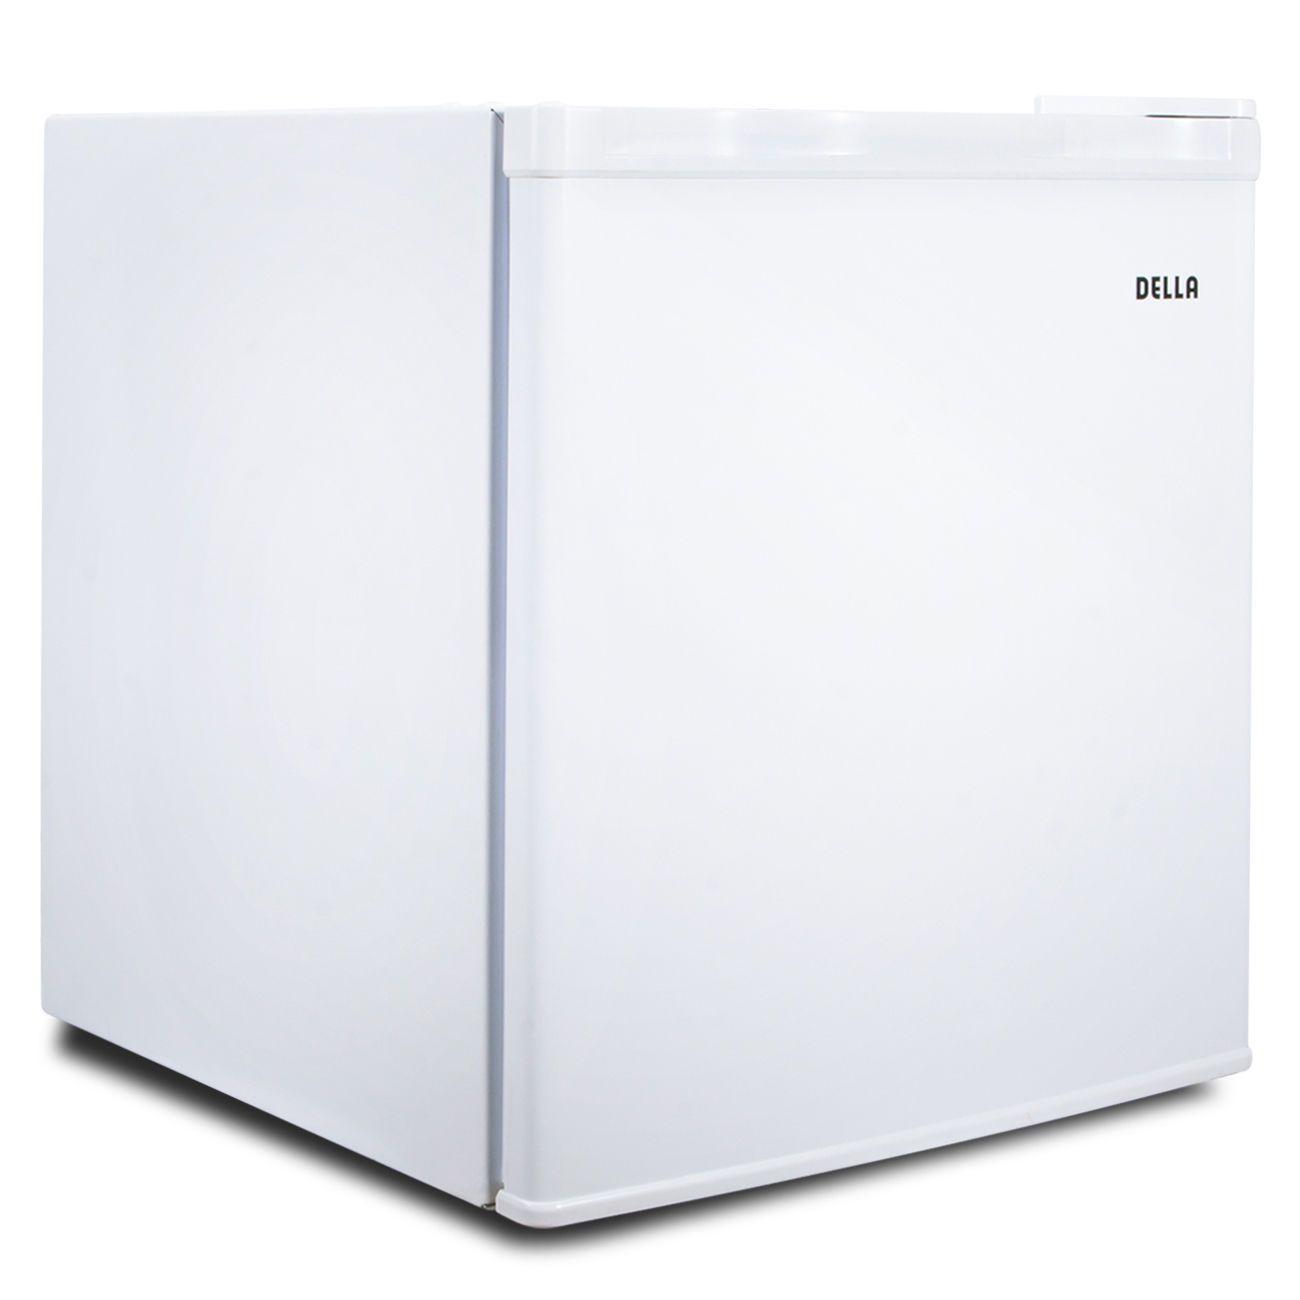 Small Stand Up Freezer 1 1 Cu Ft Upright Compact Freezer White Energy Saving Home Office